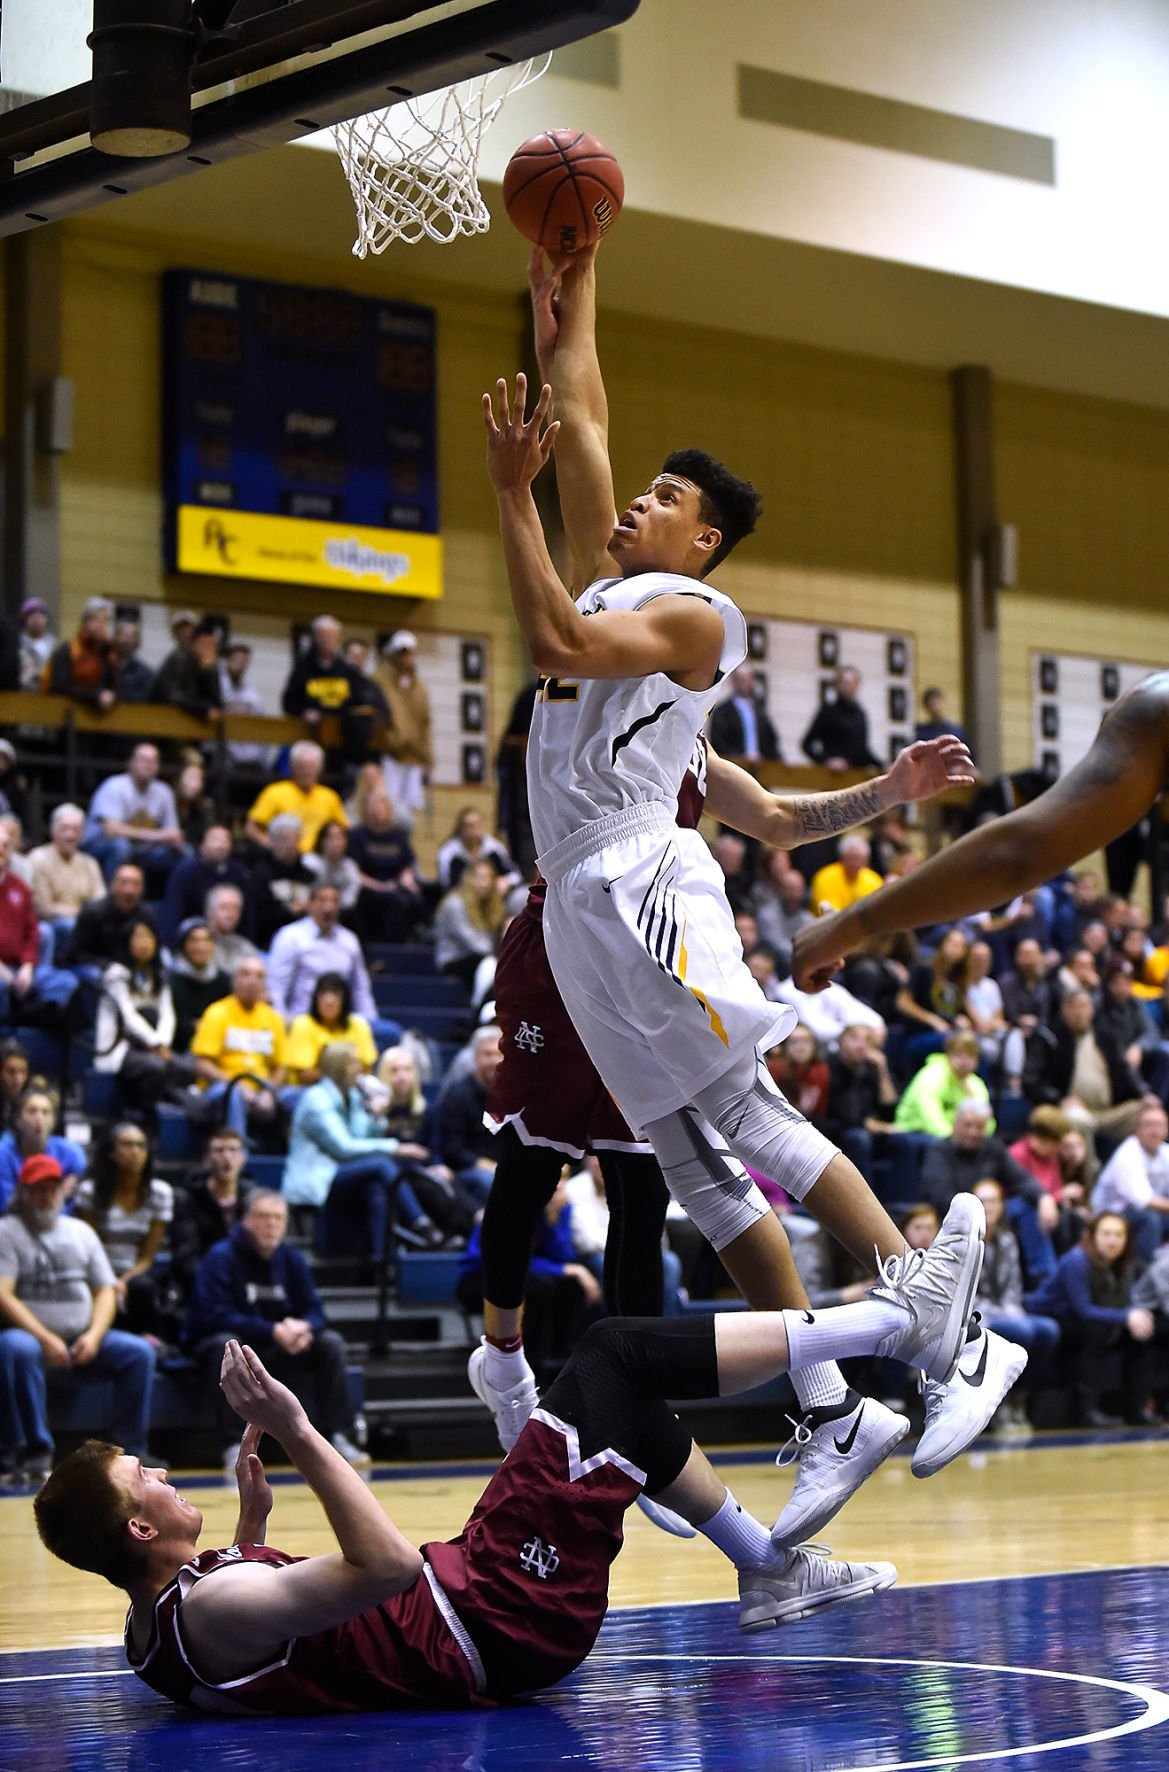 College Basketball: Augustana College vs. North Central College